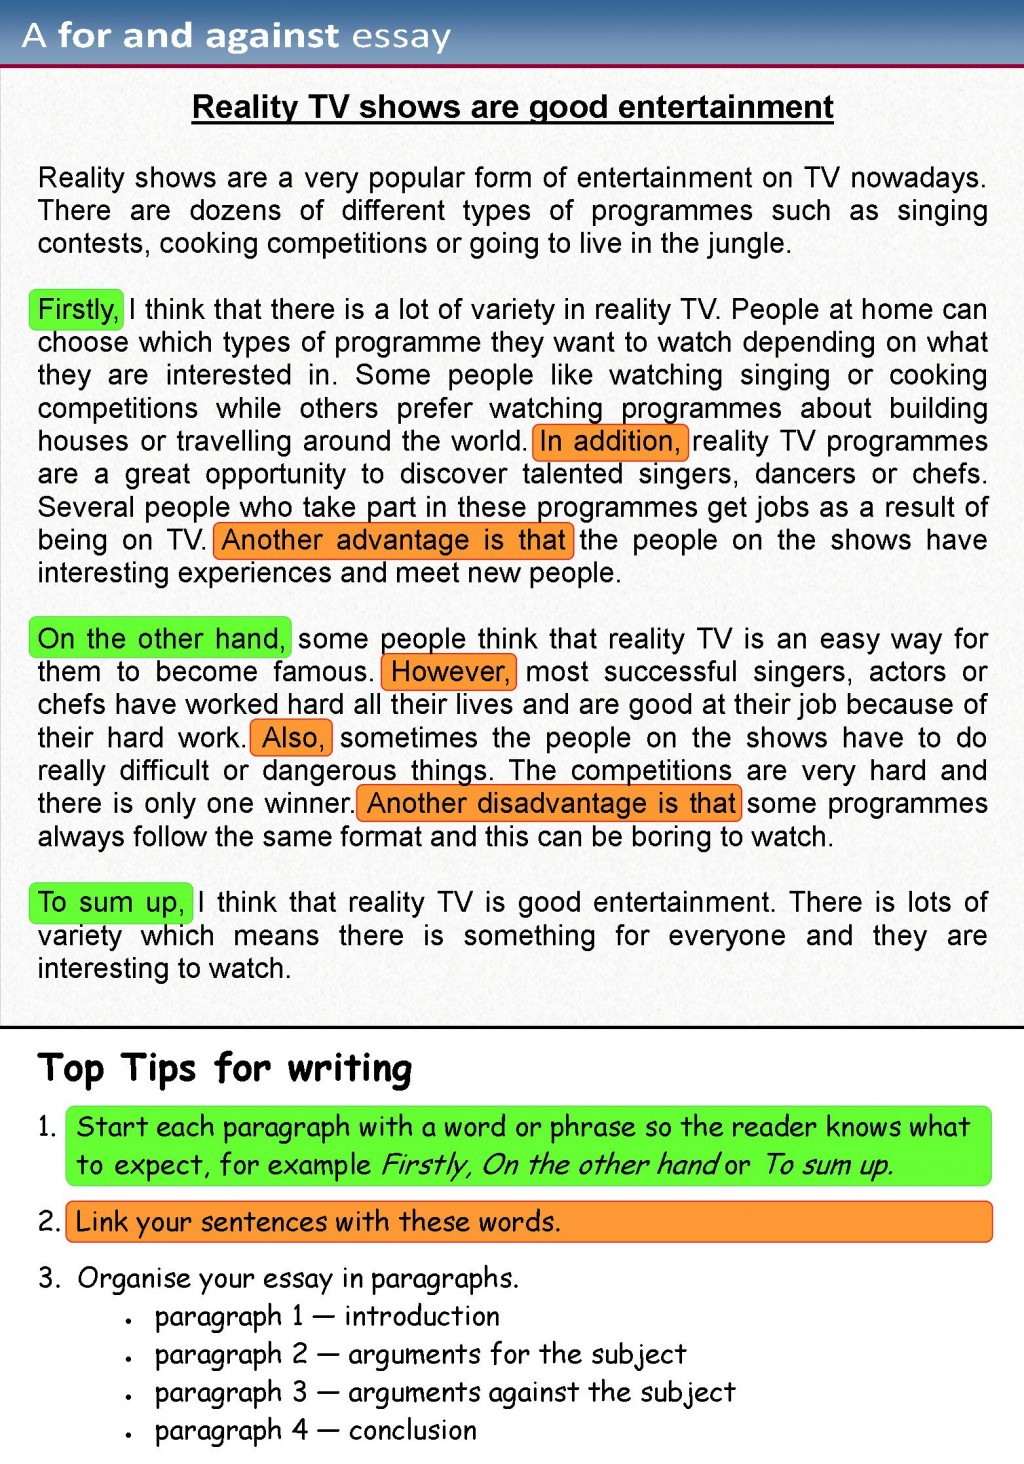 016 For Against Essay 1 Funny Essays Stupendous Examples Short Large